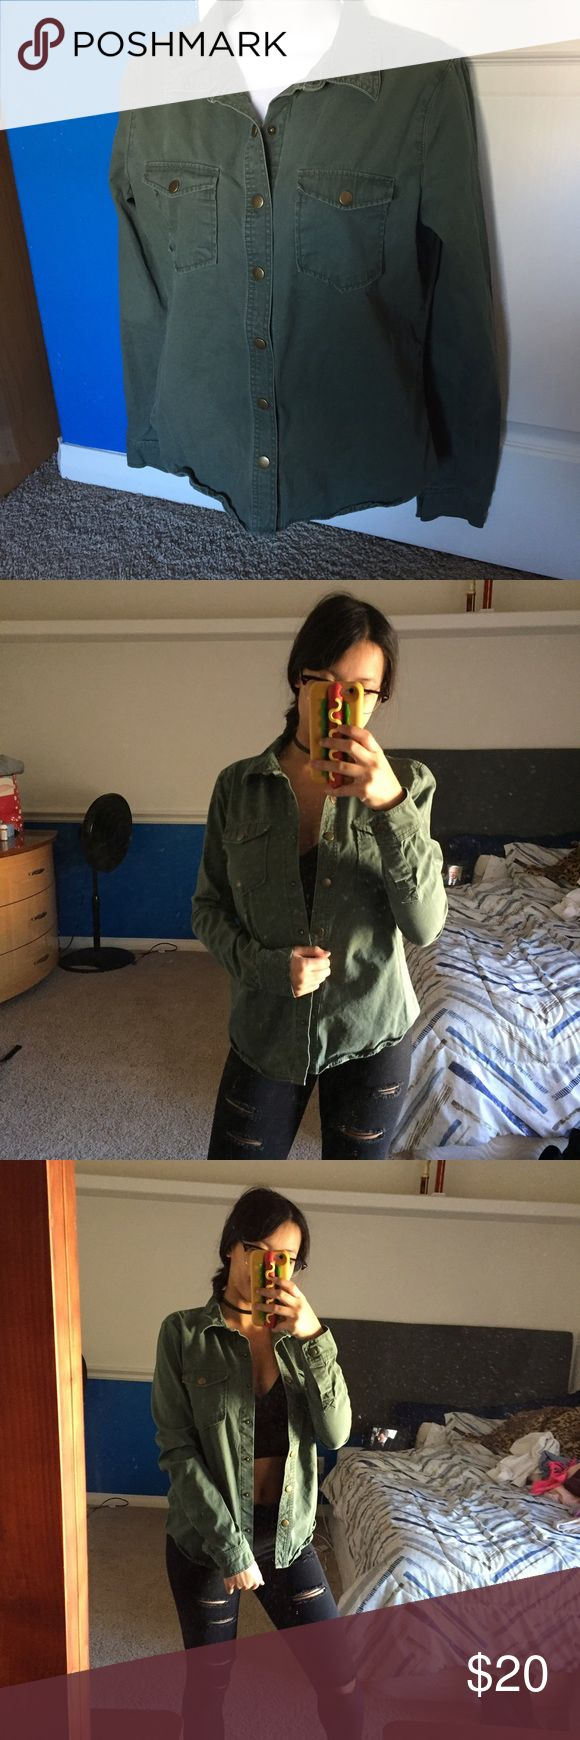 Forever 21 army green denim jacket used at most 3 times, in great condition, has 2 front pockets. buttons down and has a collar Forever 21 Jackets & Coats Jean Jackets